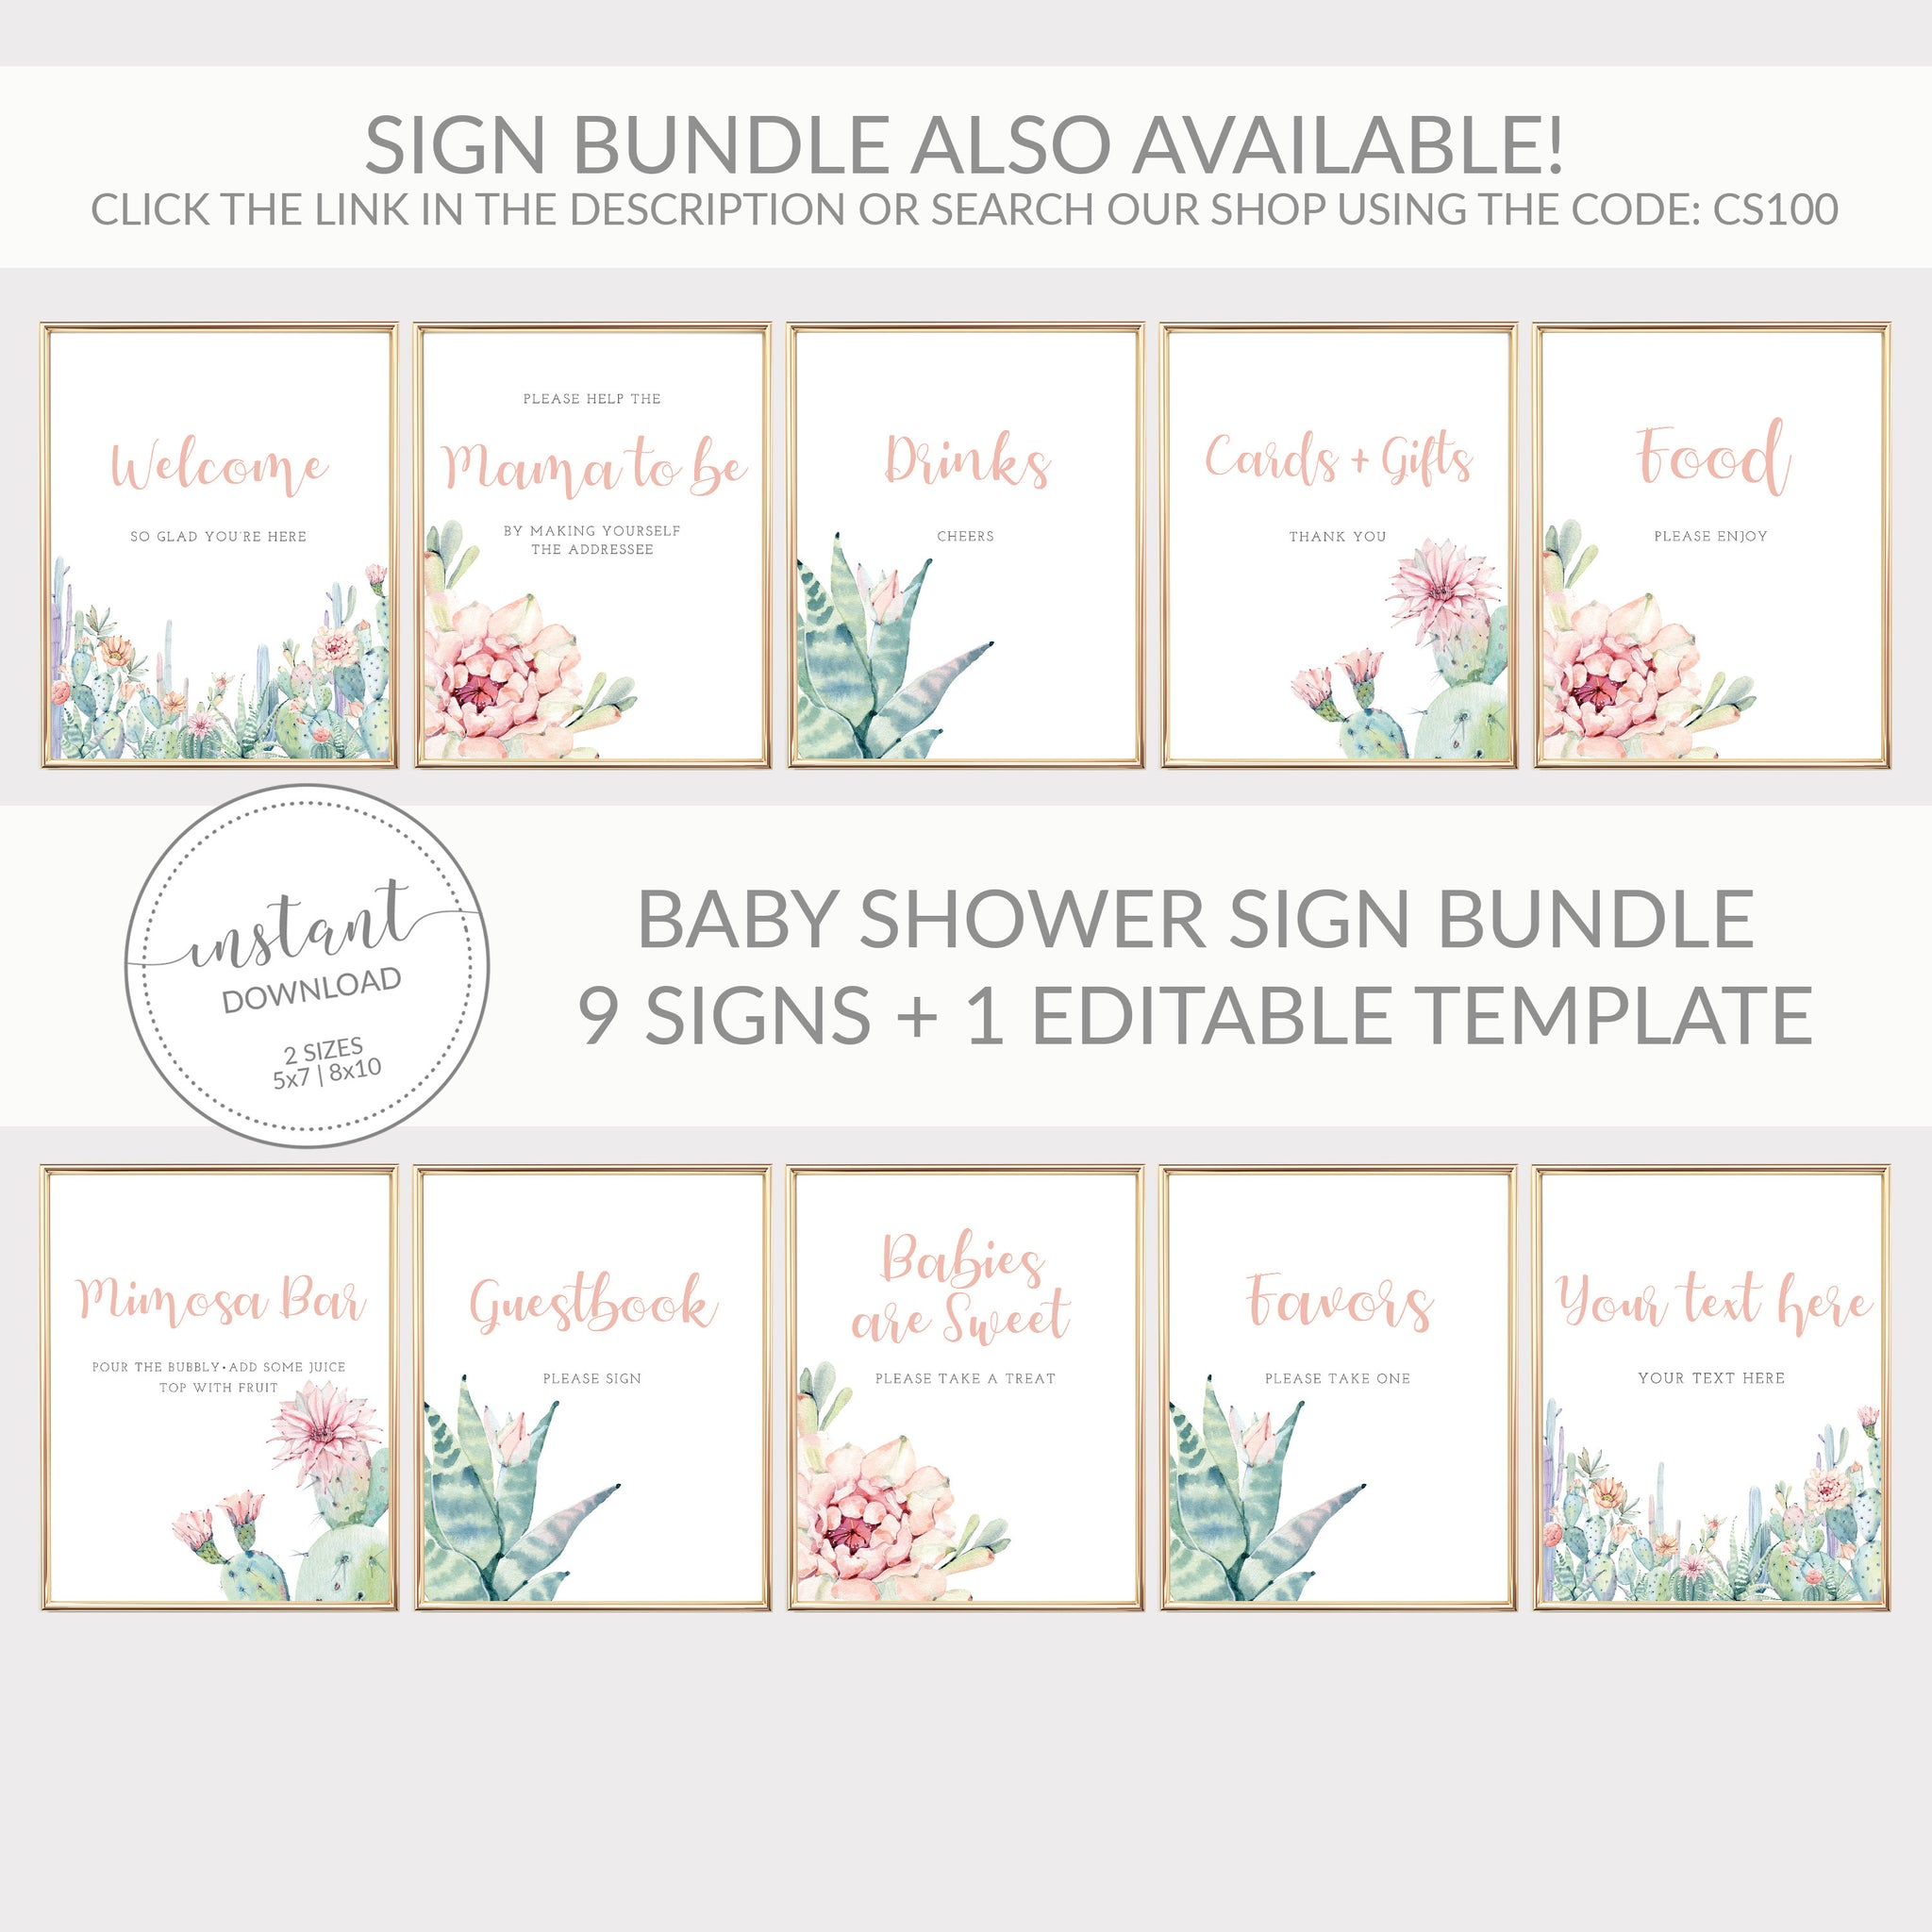 Succulent Baby Shower Address an Envelope Sign Printable, Cactus Baby Shower Table Signs, Help The Mom To Be, DIGITAL DOWNLOAD - CS100 - @PlumPolkaDot